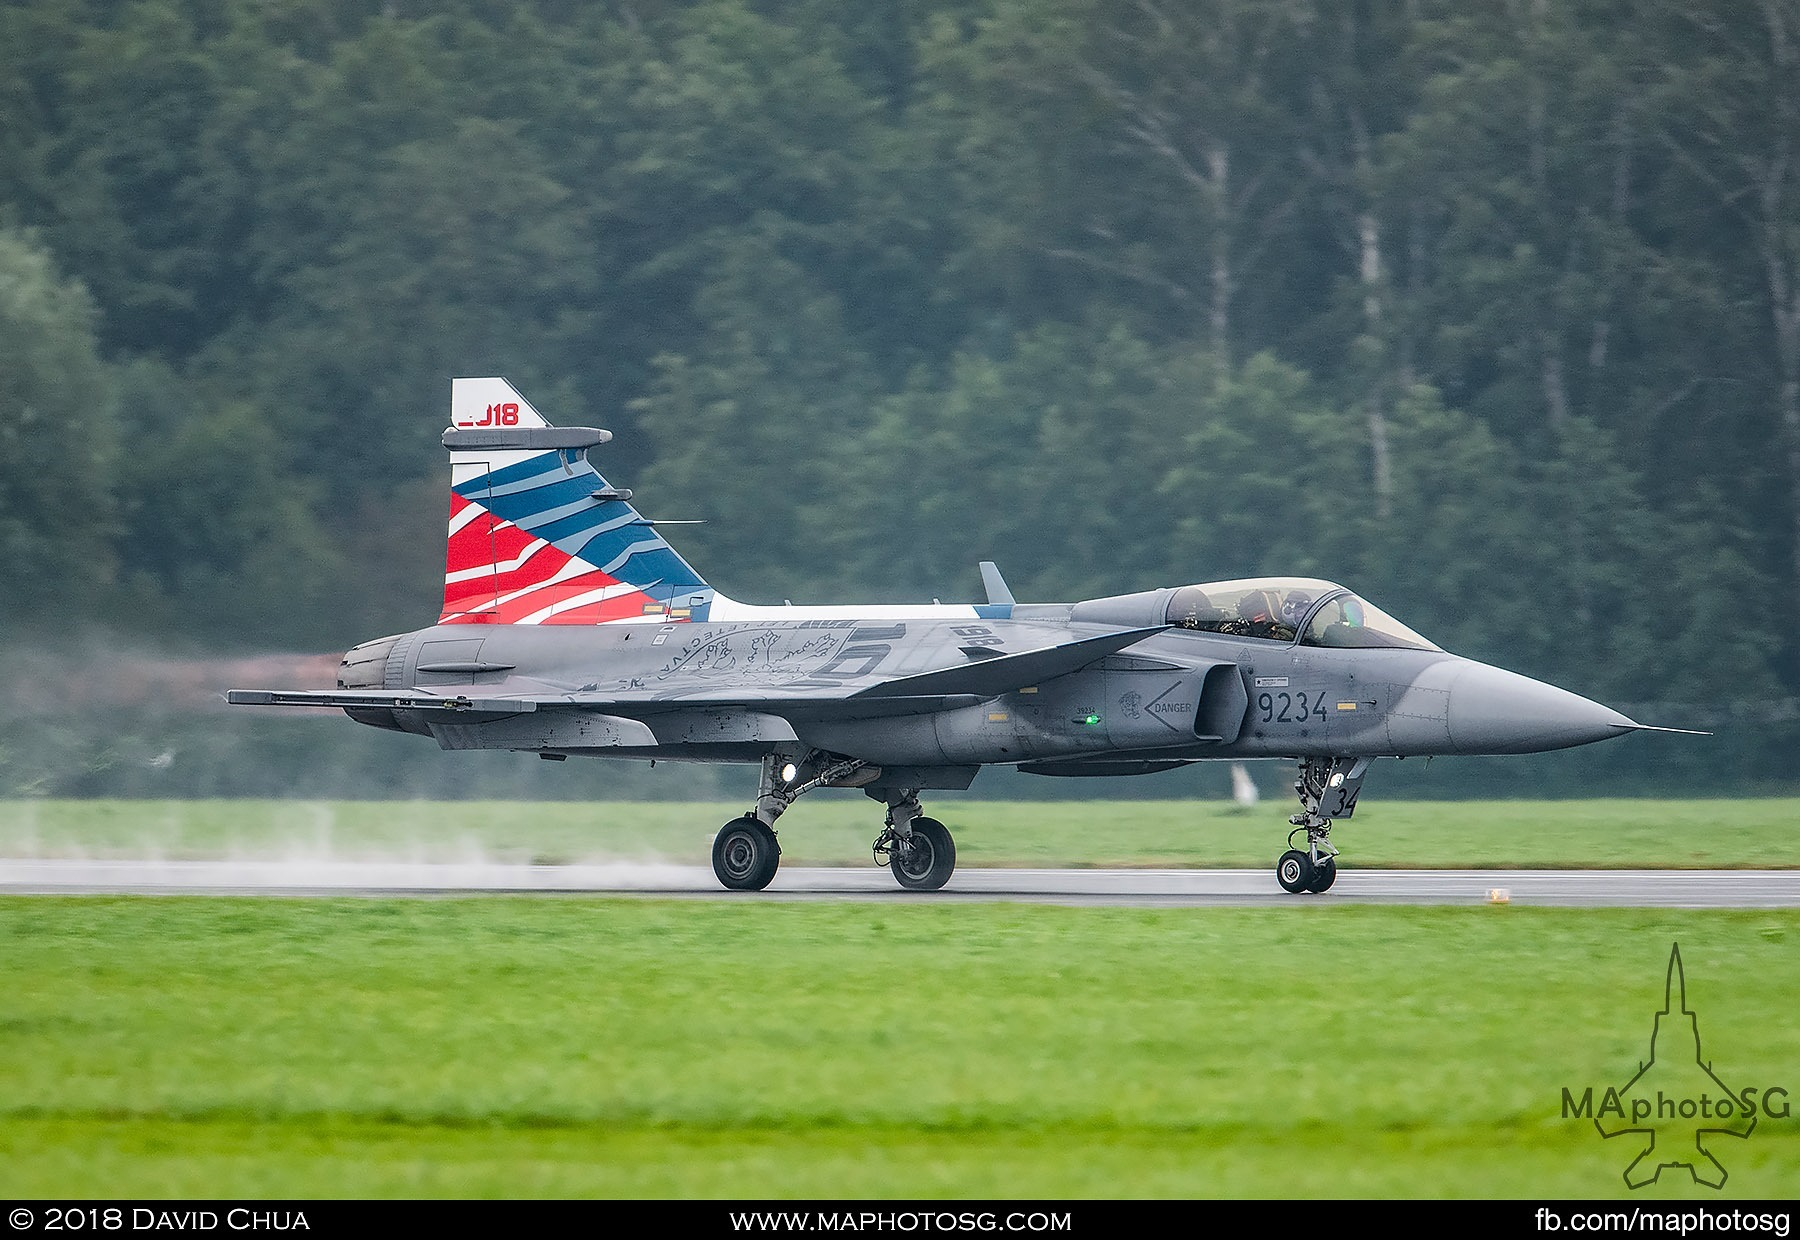 31. Czech Air Force Jas-39C Gripen thunders down the wet runway in front of the crowd